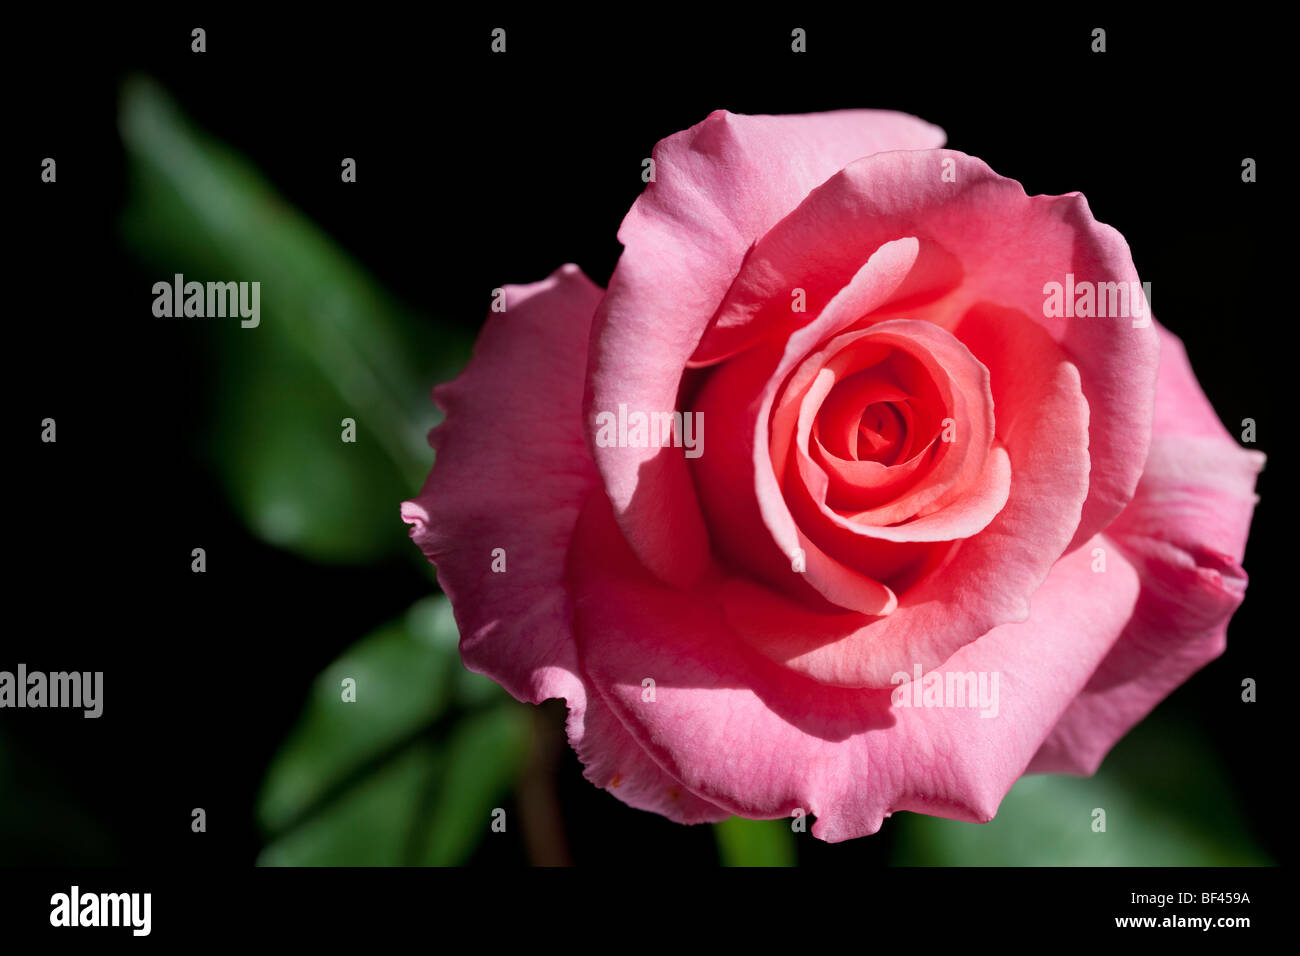 Pink rose against a dark background - Stock Image